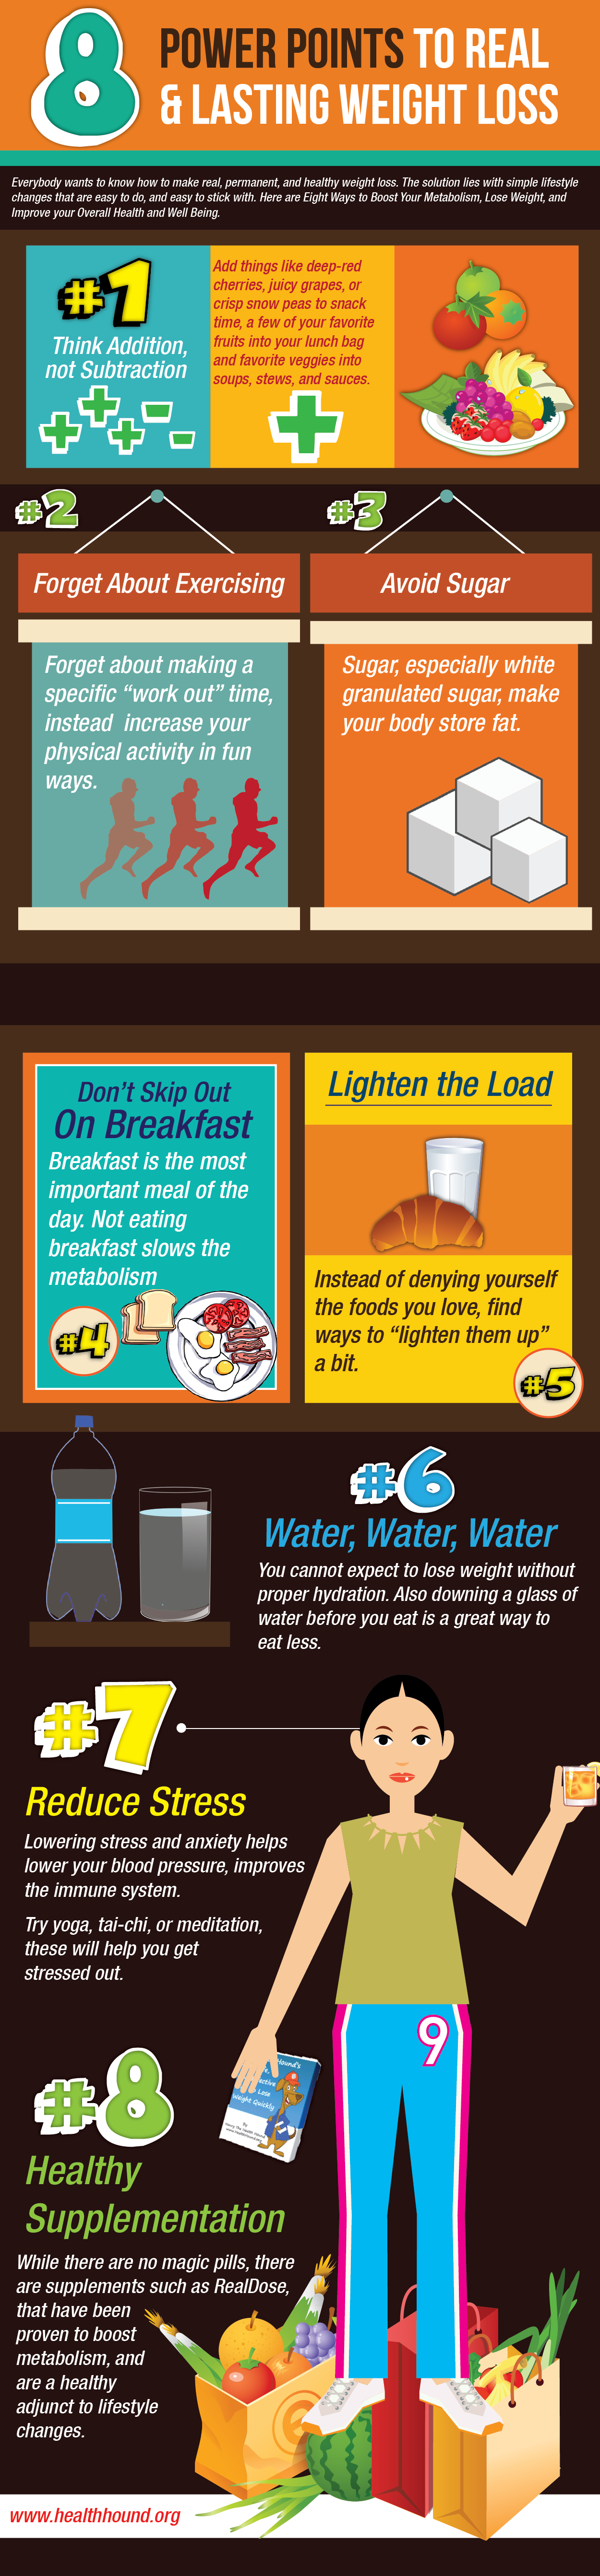 8 Power Points To Lose Weight Effectively (And Make It Last) Infographic